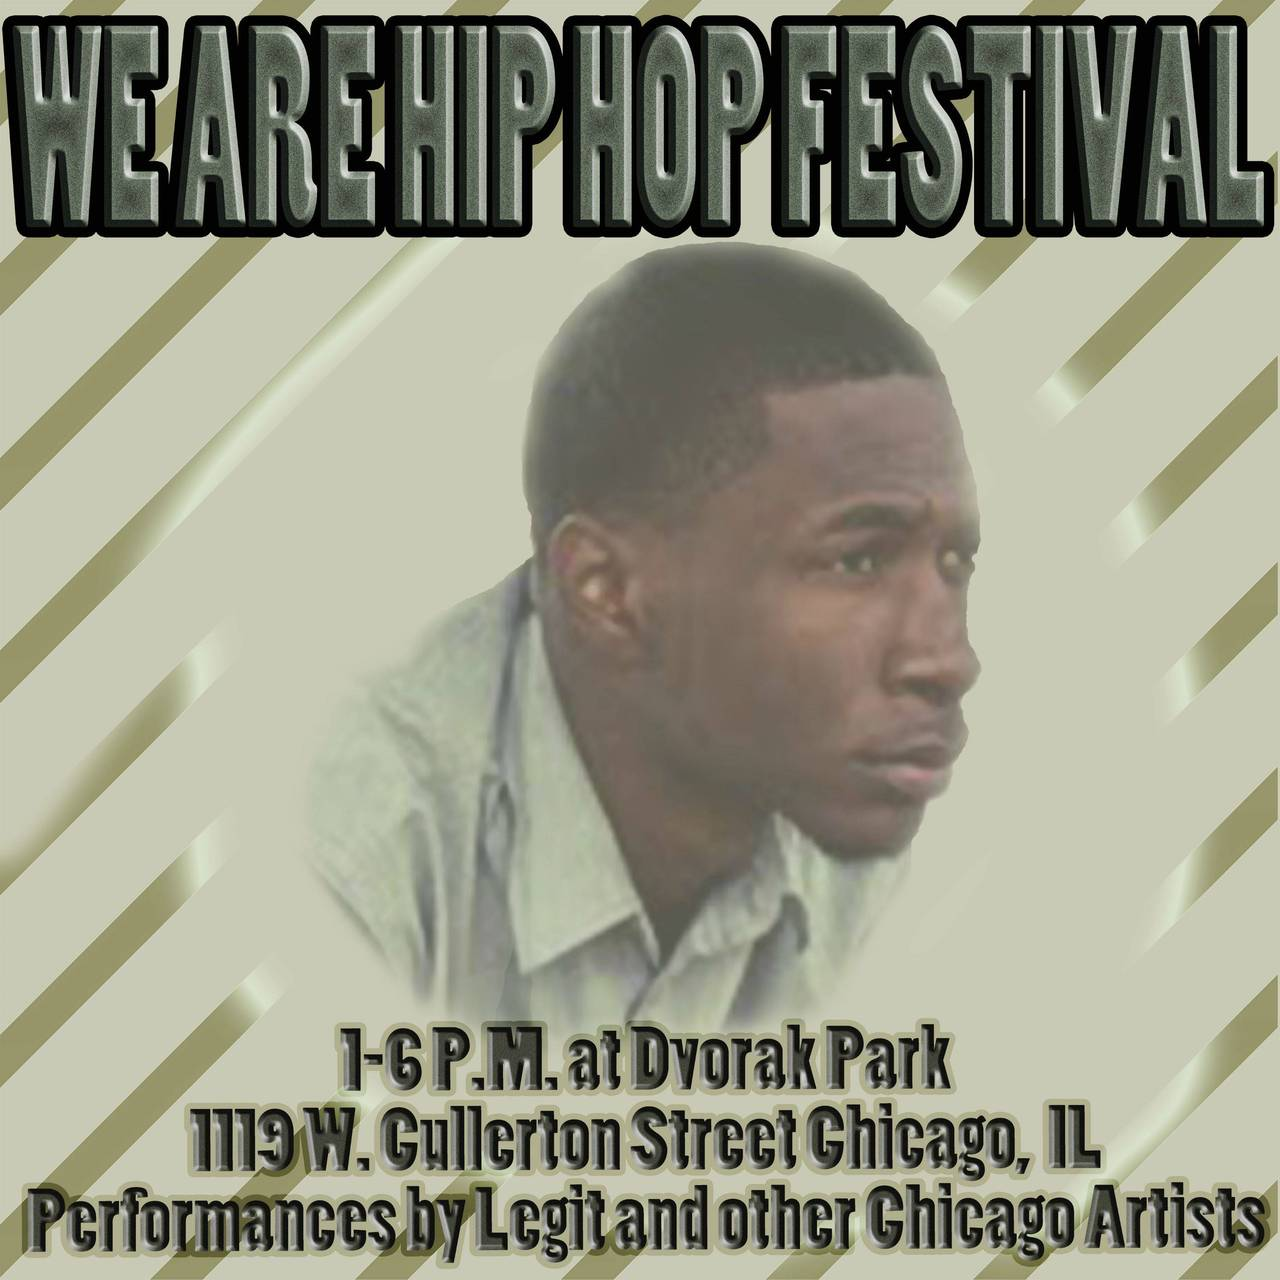 ONLY 2 MORE DAYS UNTIL THE WE R HIP HOP FESTIVAL! WHO'S COMING?